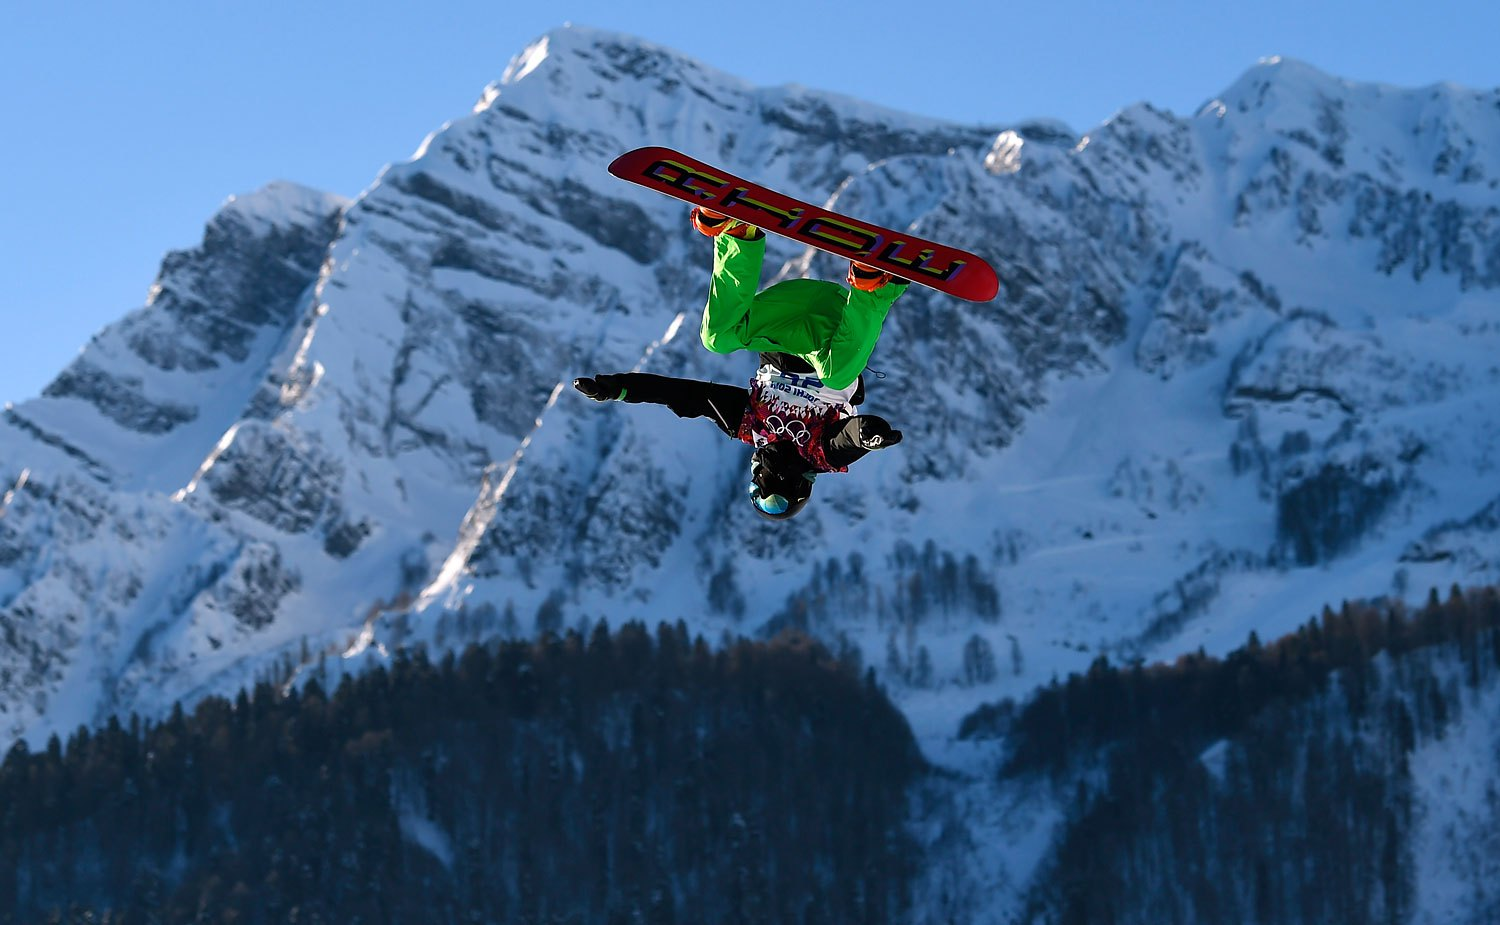 Ireland's Seamus O'Connor performs a jump during the men's snowboard slopestyle semi-final competition in Rosa Khutor, Feb. 8, 2014.